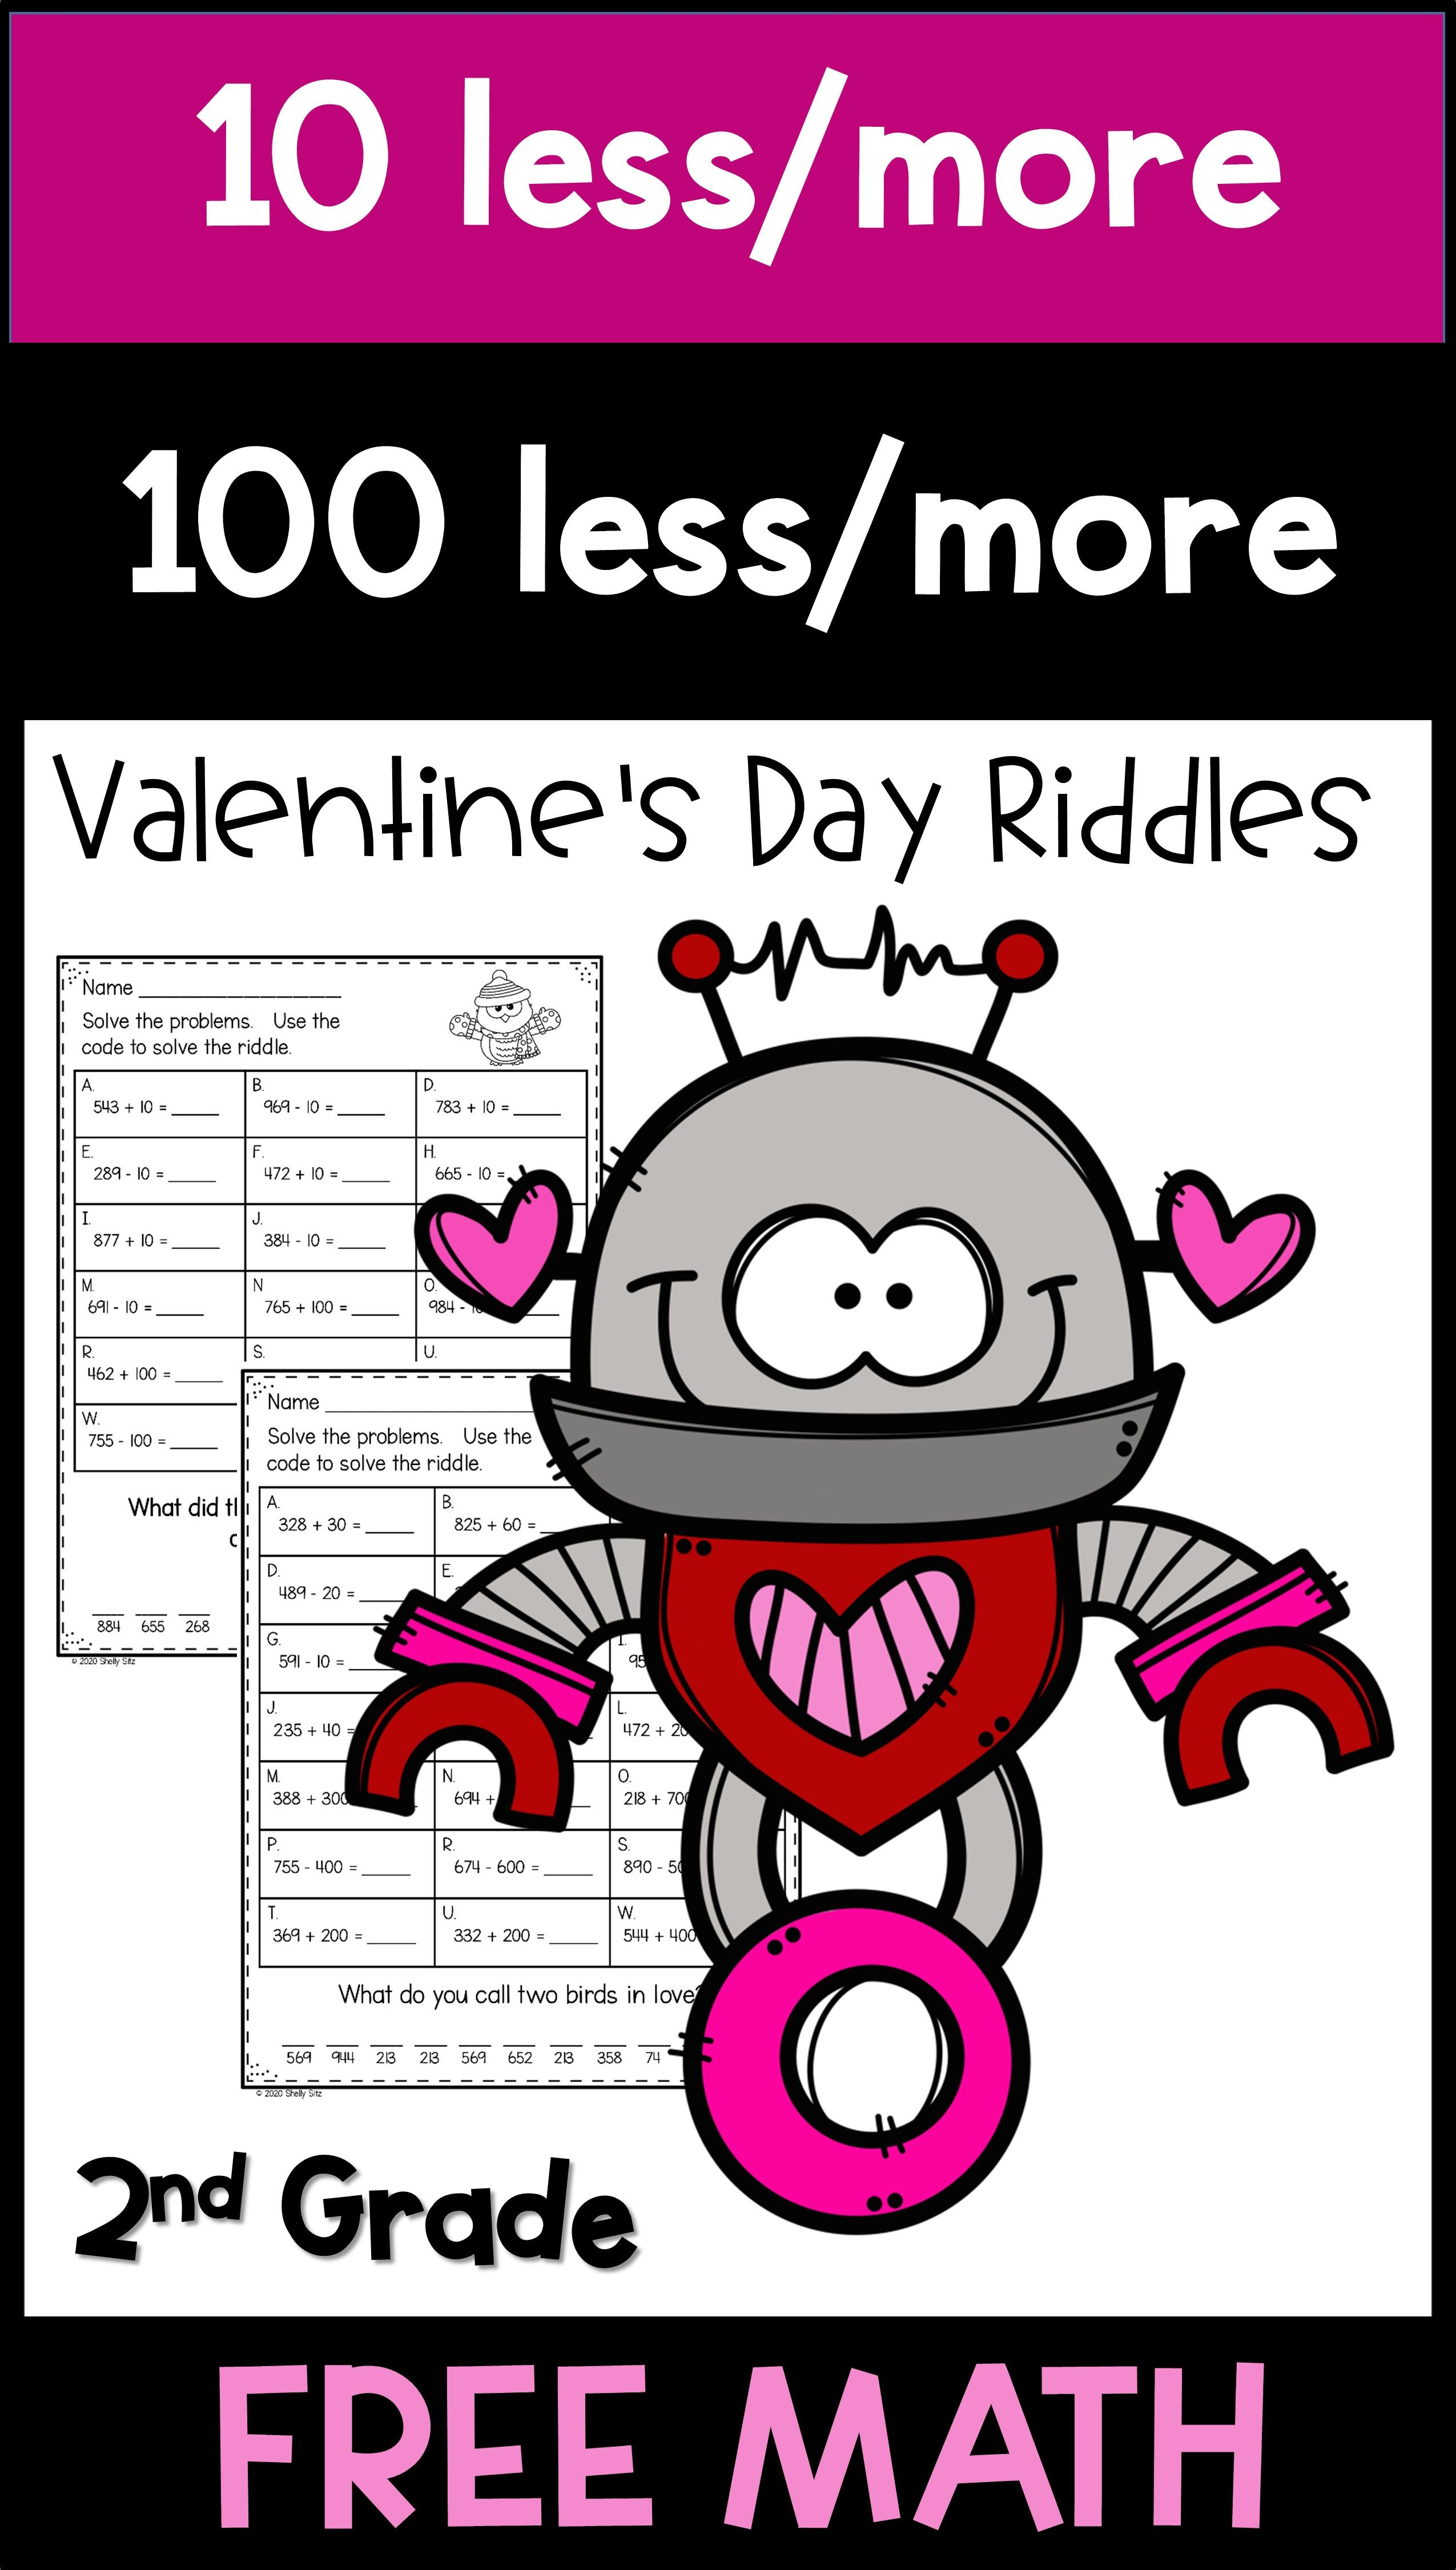 Math Freebie For Second Grade Includes 10 More And 10 Less